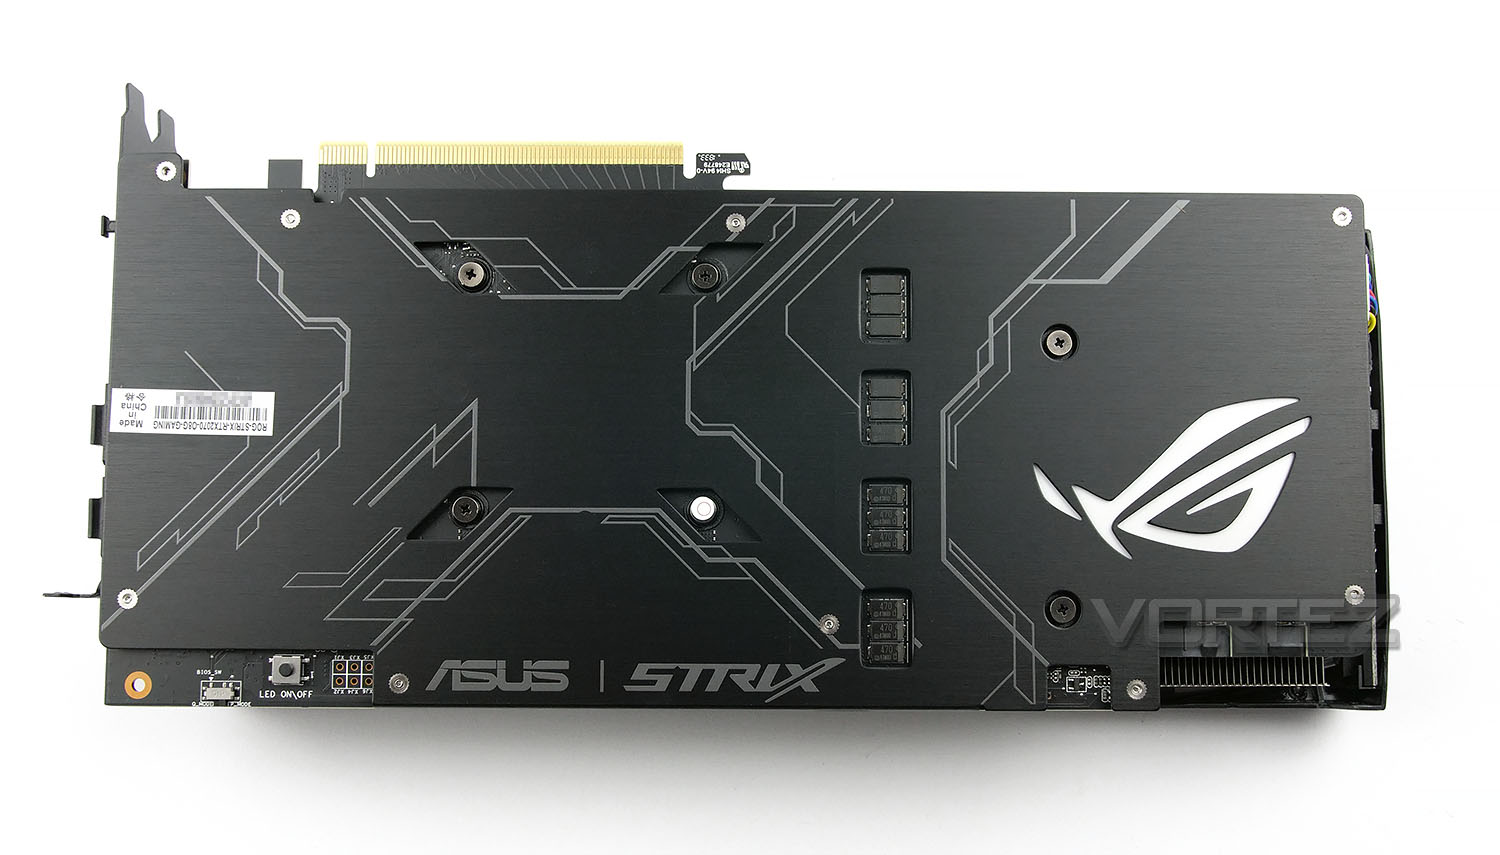 ASUS ROG STRIX RTX 2070 OC Review - Closer Look (Overview Cont )